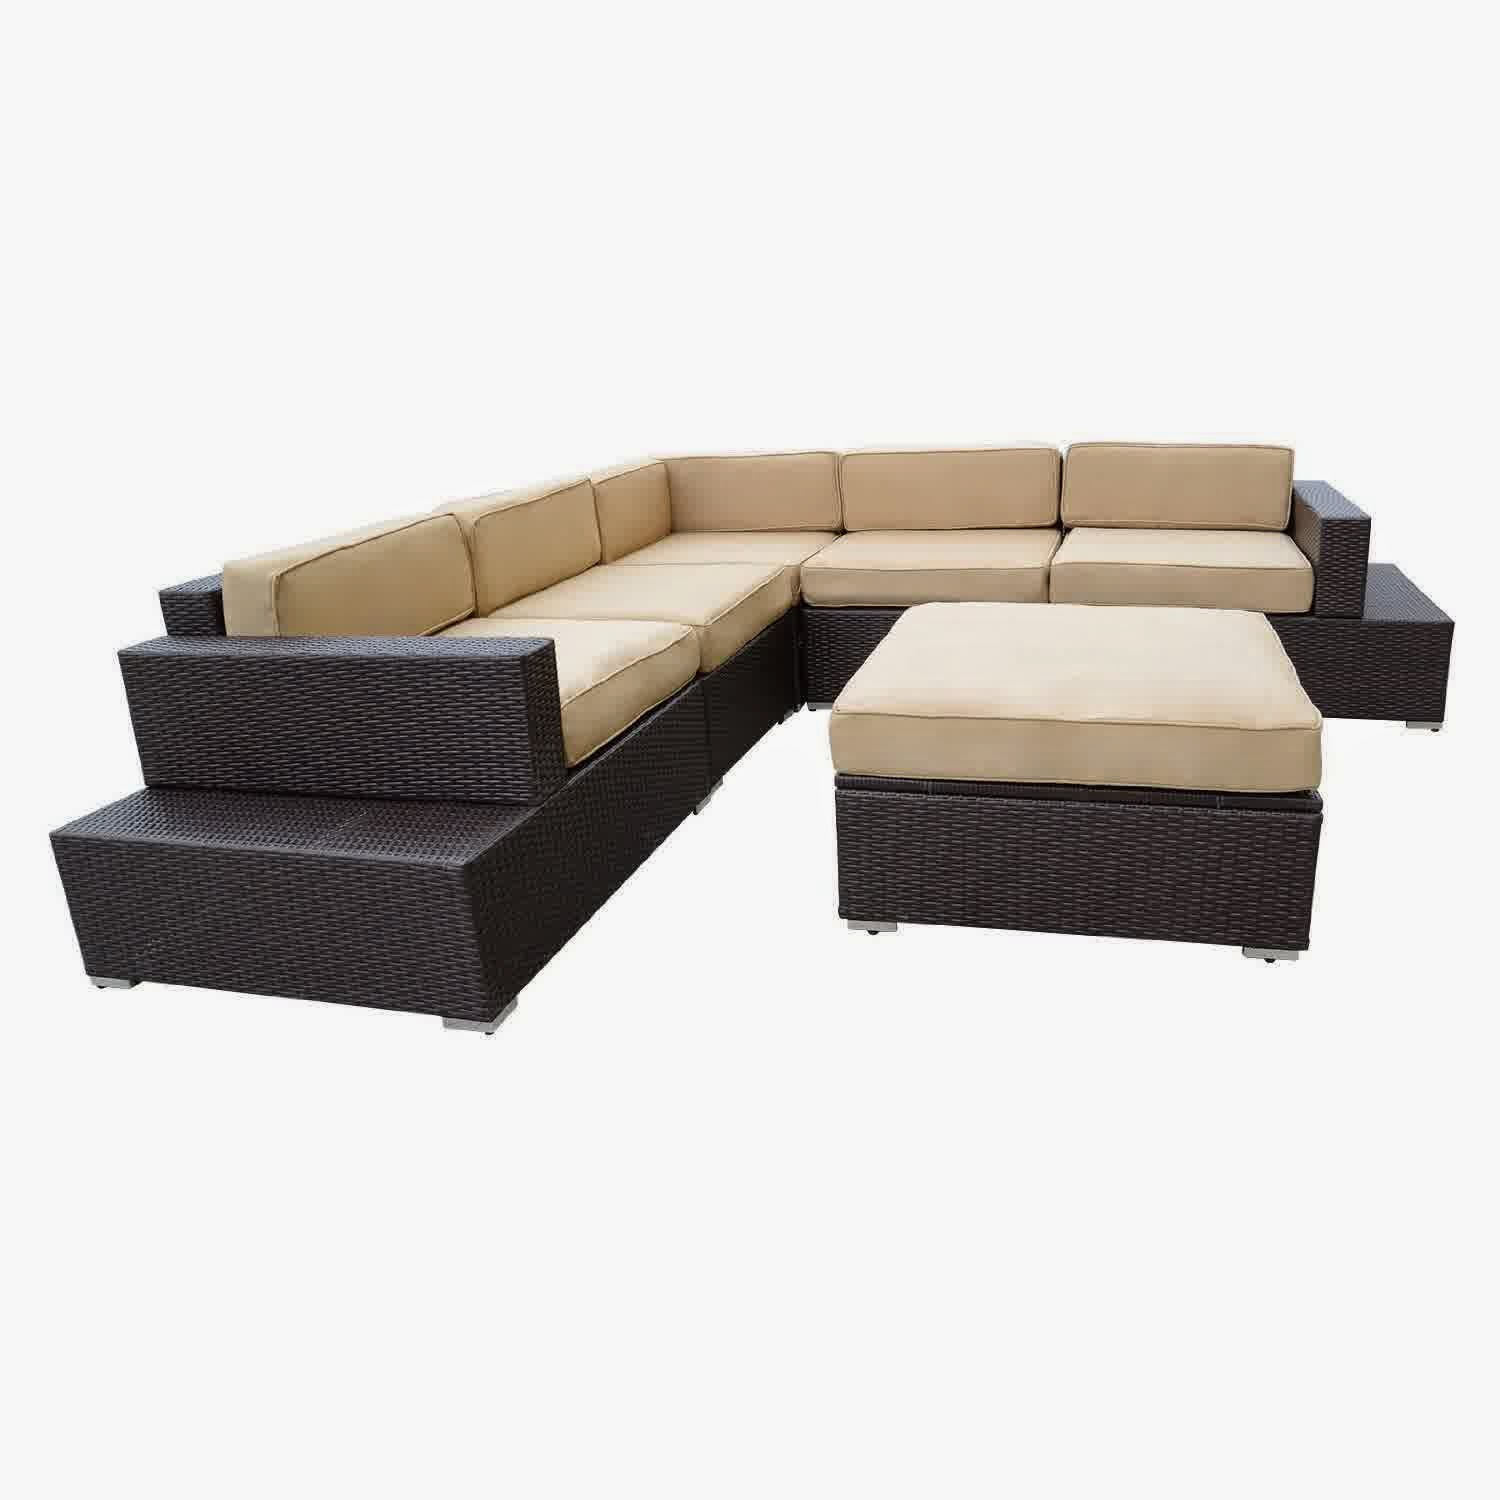 Outdoor Rattan Wicker Sofa Sectional Patio Furniture Set Most Comfortable Affordable Sleeper Big Sale Discount 50